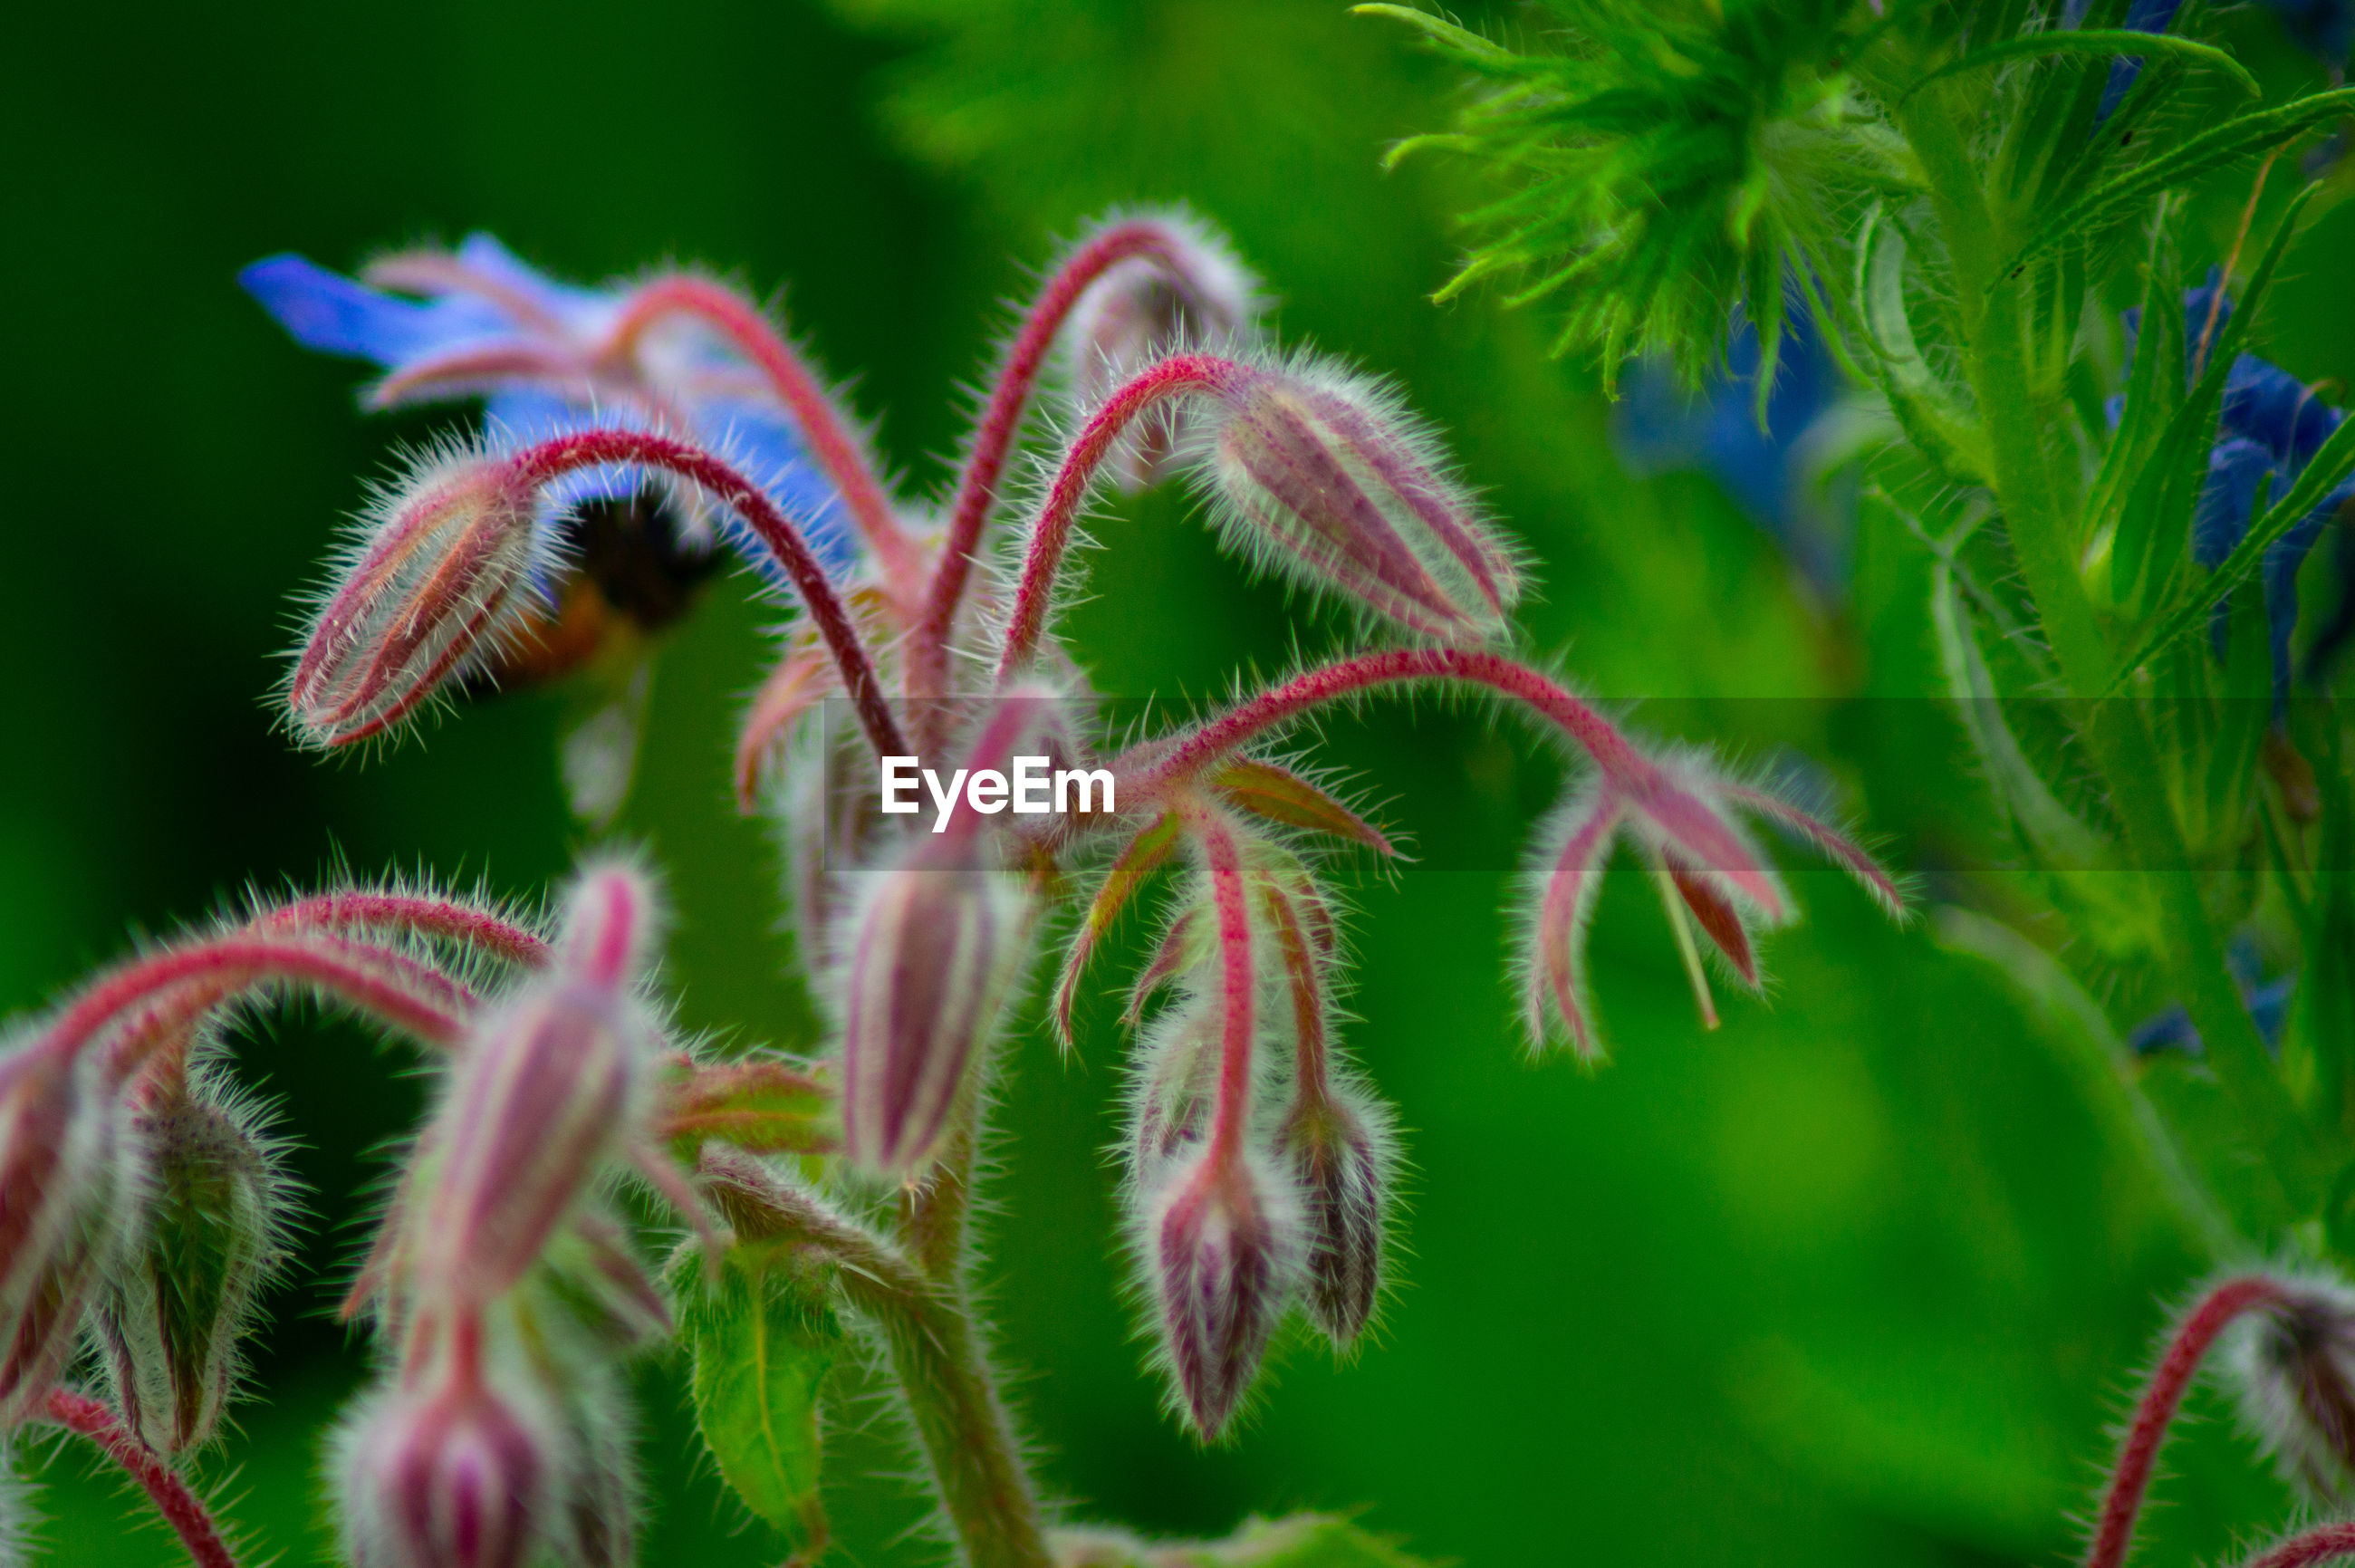 Close-up of pink blue and purple flowering plant